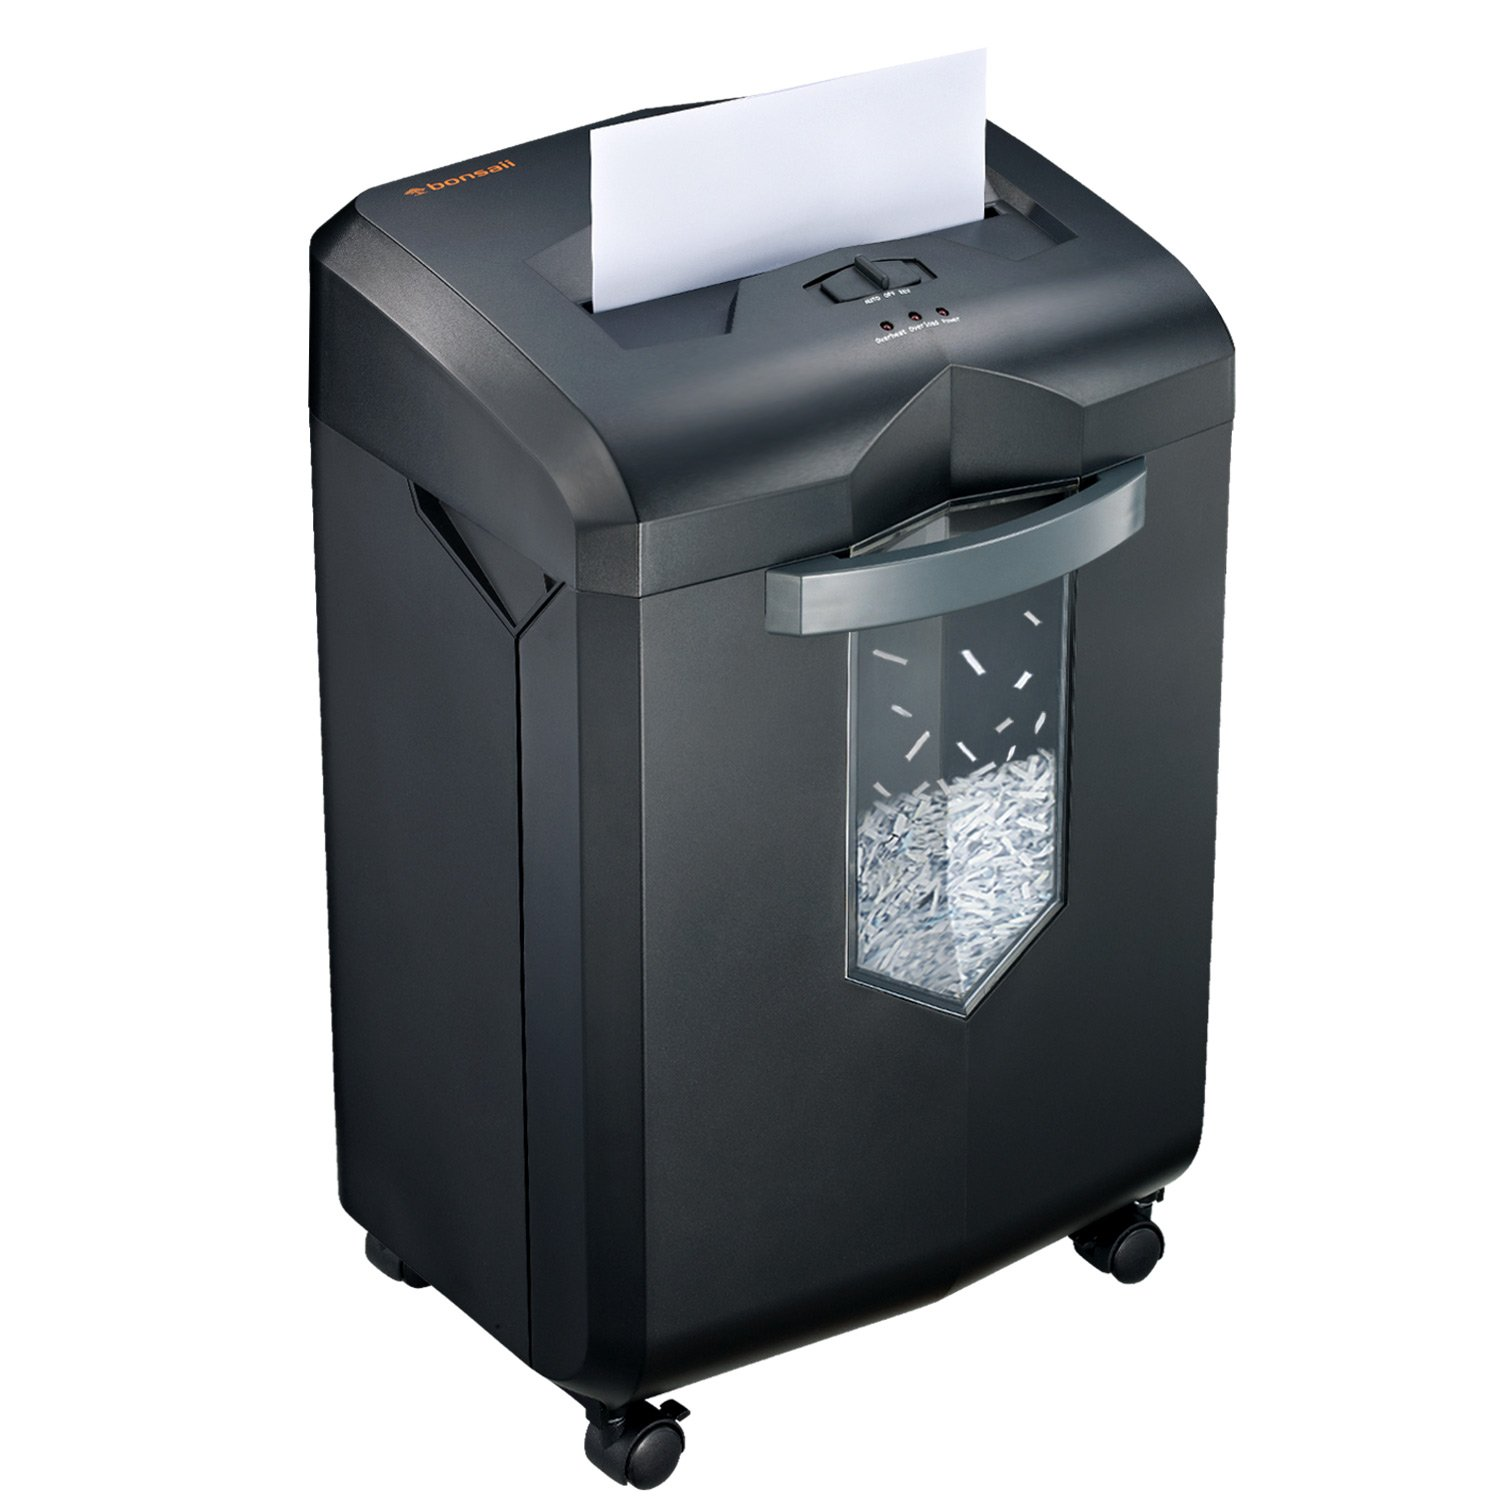 Bonsaii EverShred C149-C Paper Shredder Black Friday Deals